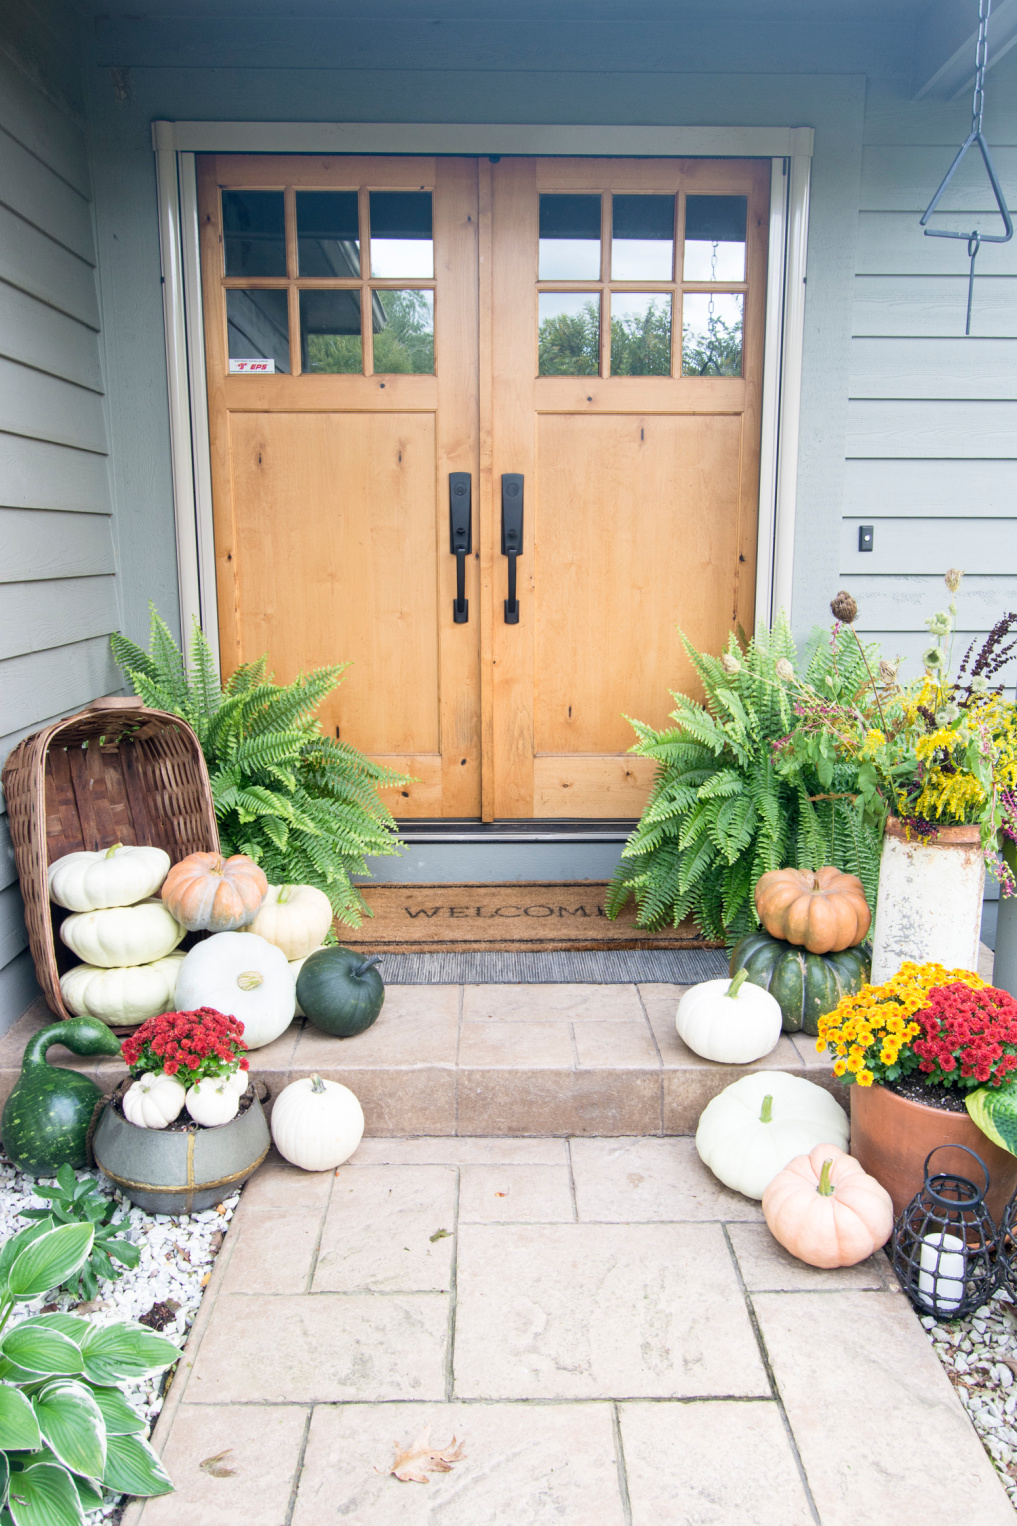 10 Beautiful Fall Porches - love the pumpkins spilling out of the basket kellyelko.com #fall #fallporch #falldecor #falldecorating #pumpkins #curbappeal #autummdecor #autummporch